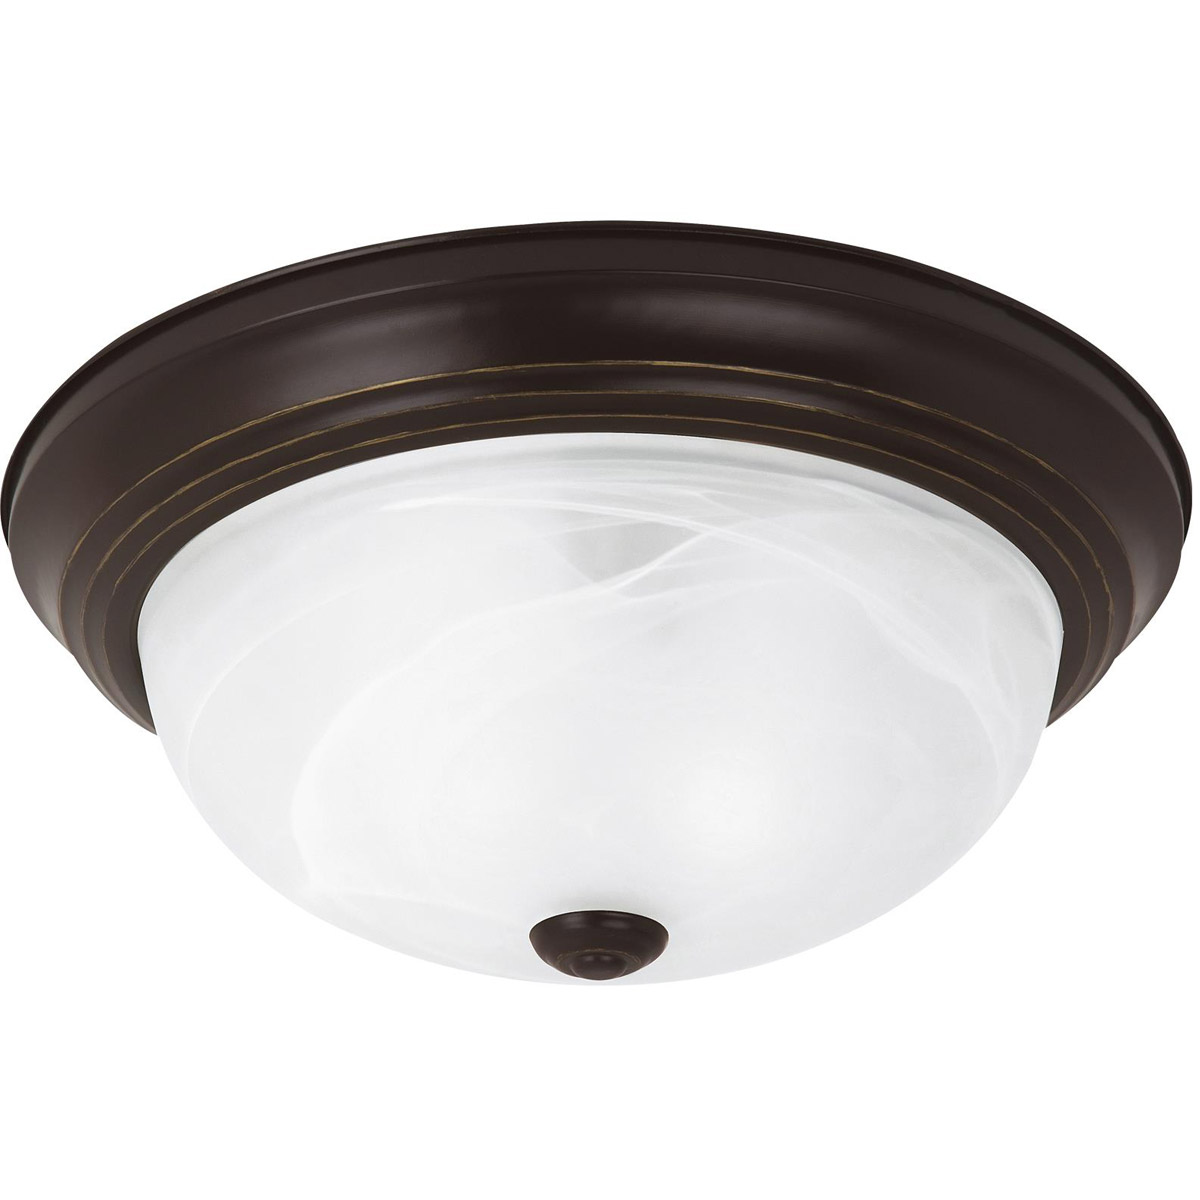 Sea Gull Lighting Windgate 1 Light Flush Mount in Heirloom Bronze 75940-782